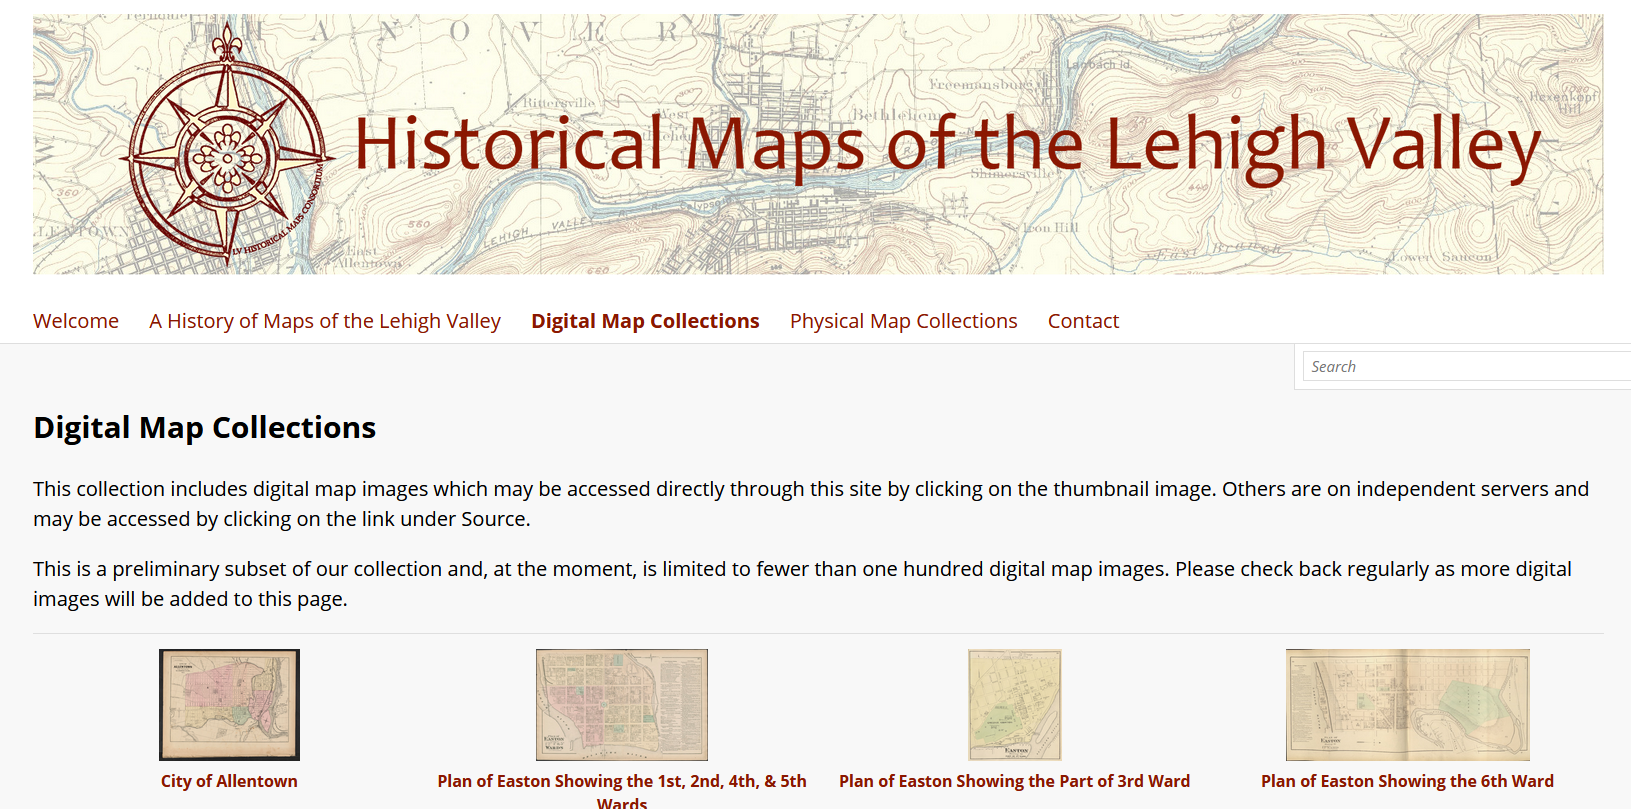 Website featuring historic map images